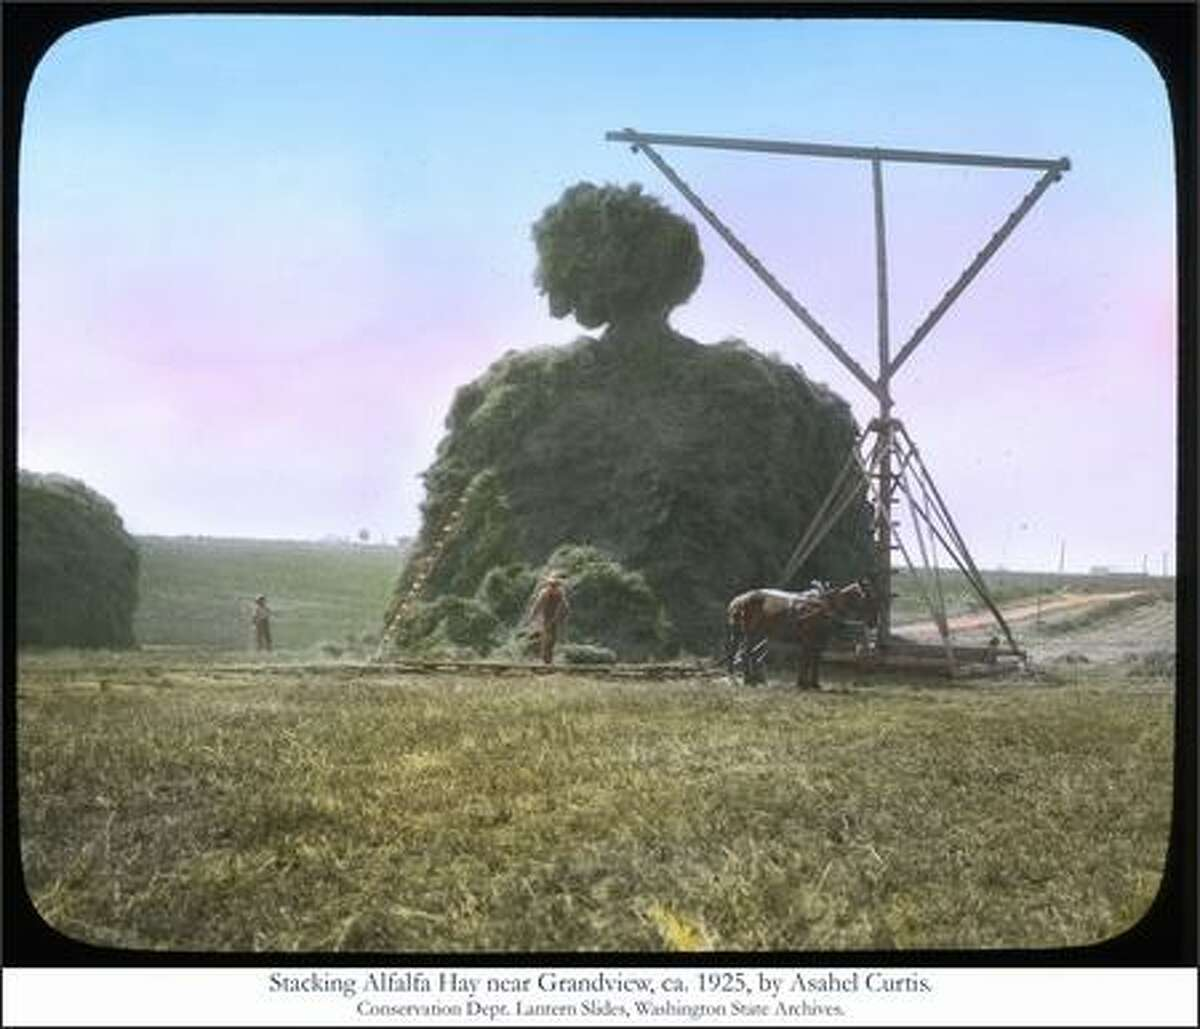 Stacking Alfalfa Hay near Grandview, ca. 1925, Photo by Asahel Curtis. Conservation Dept. Lantern Slides, Washington State Archives